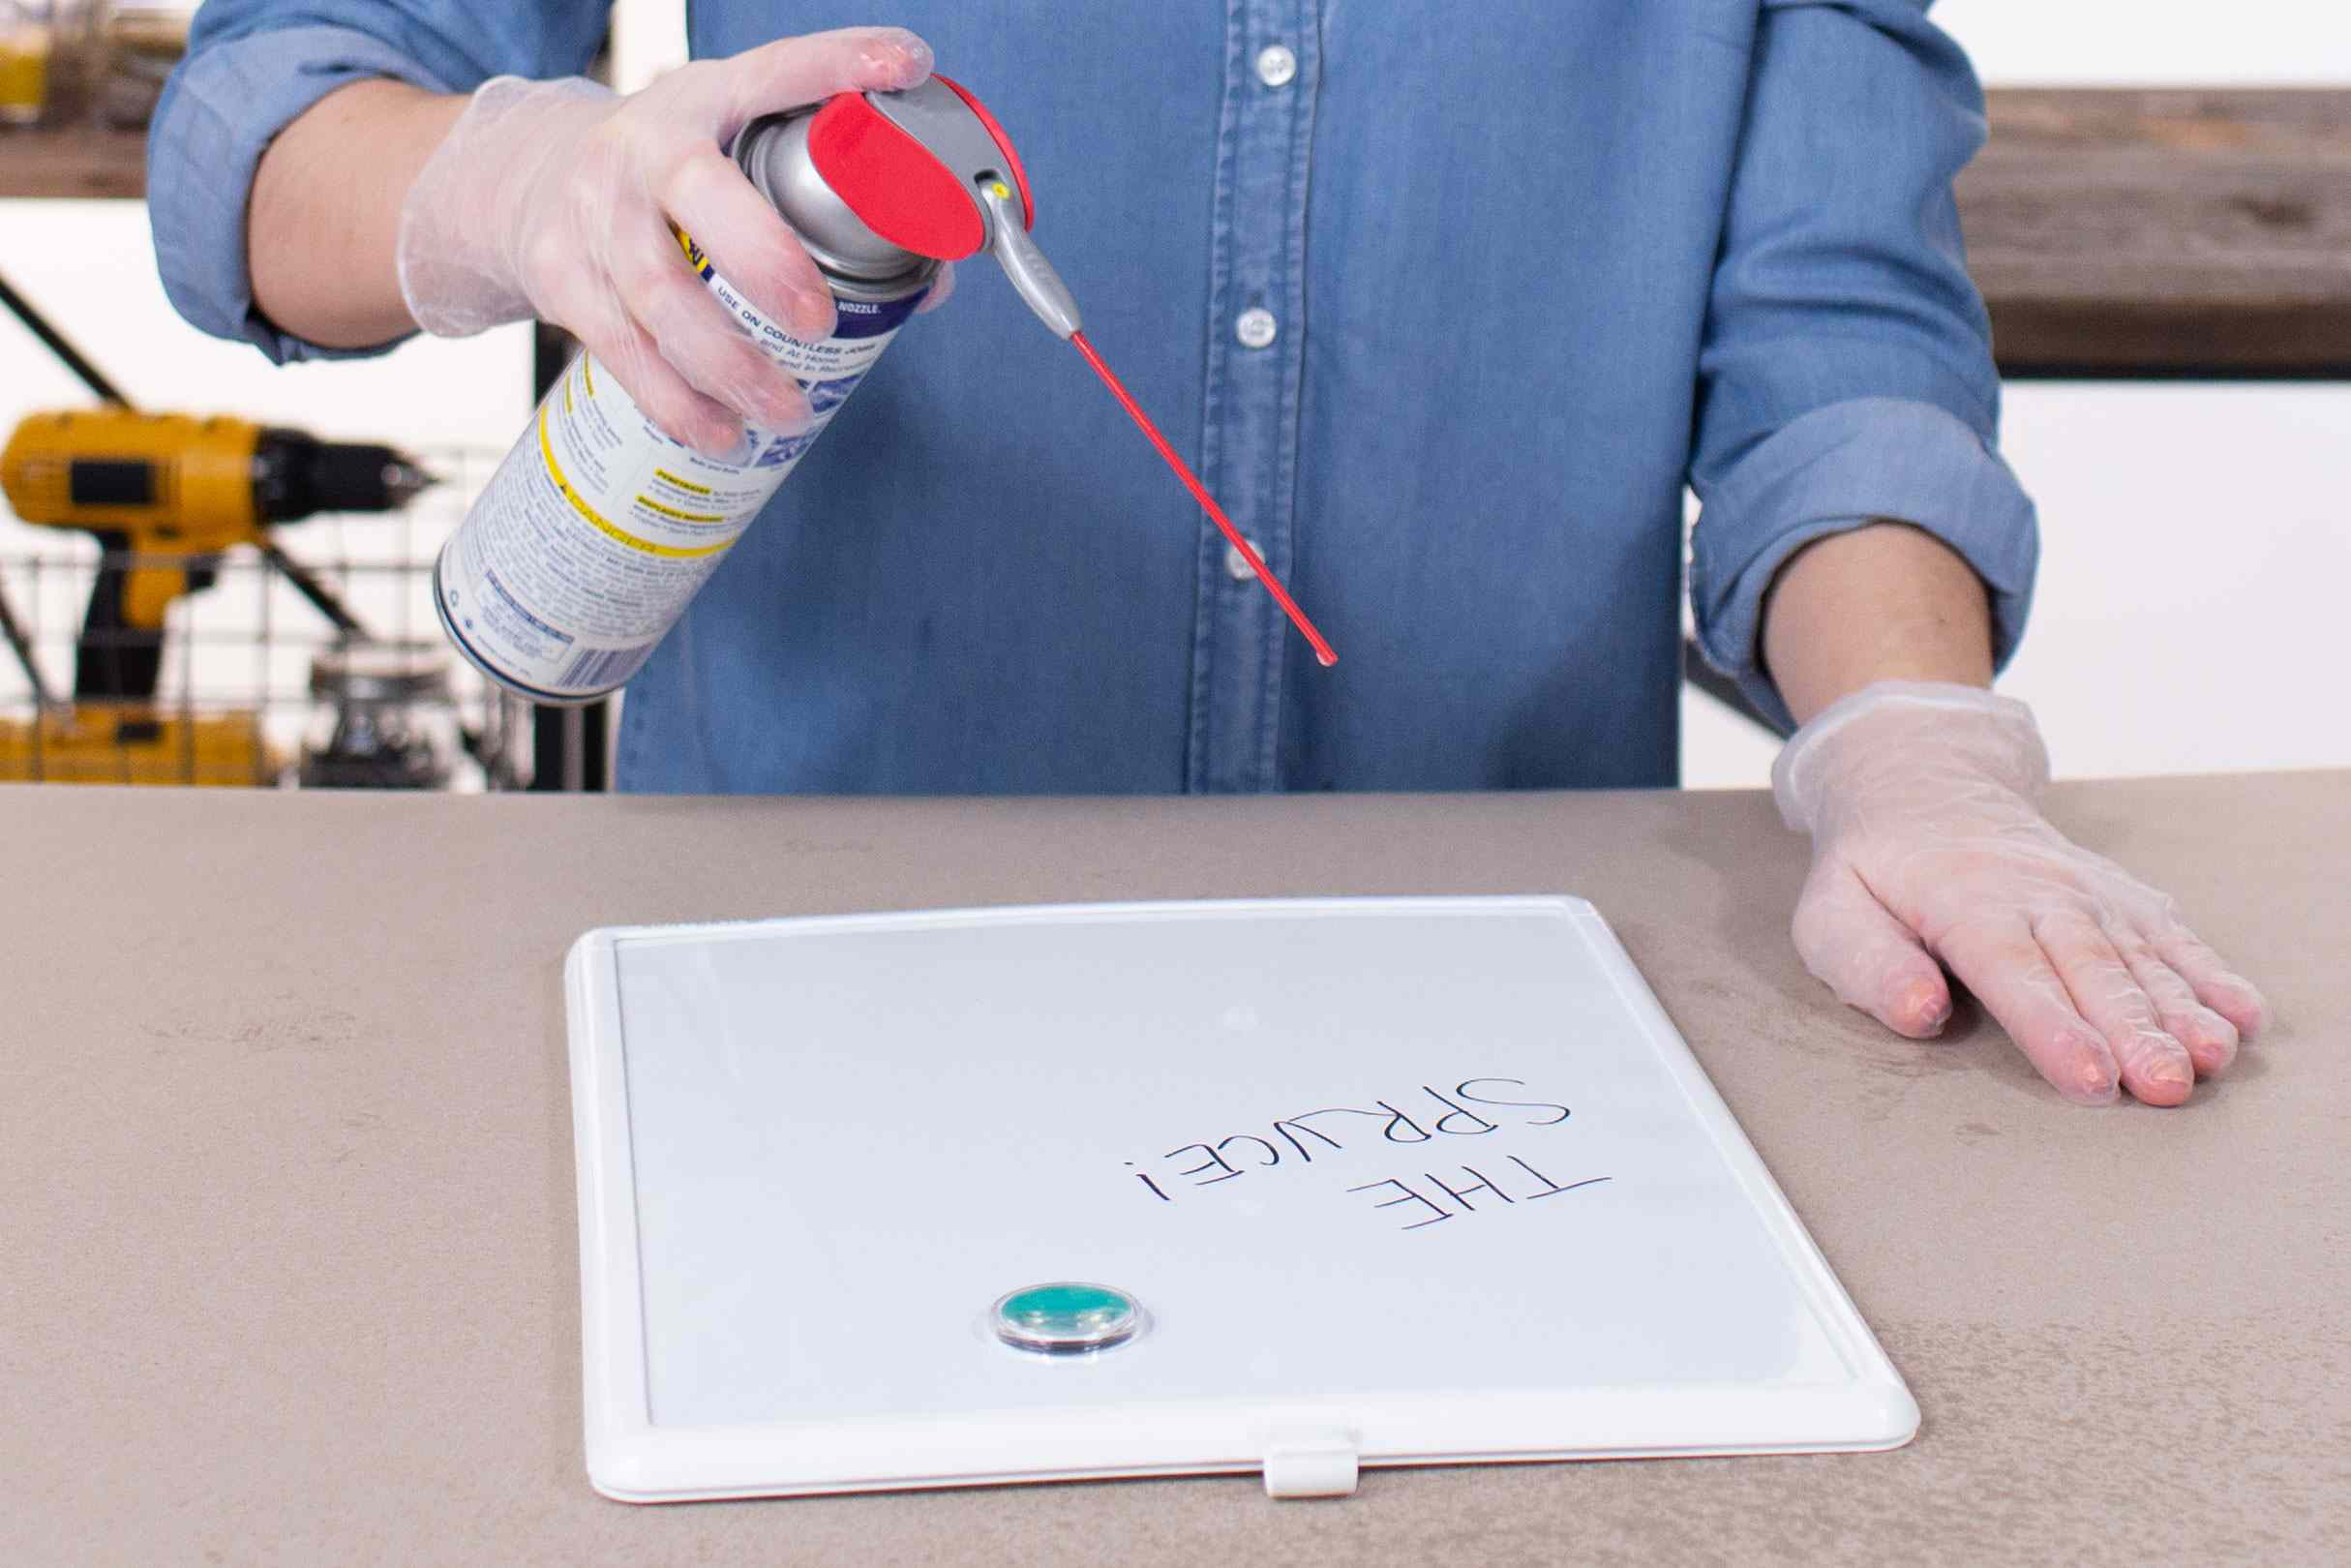 Spraying white board with WD-40